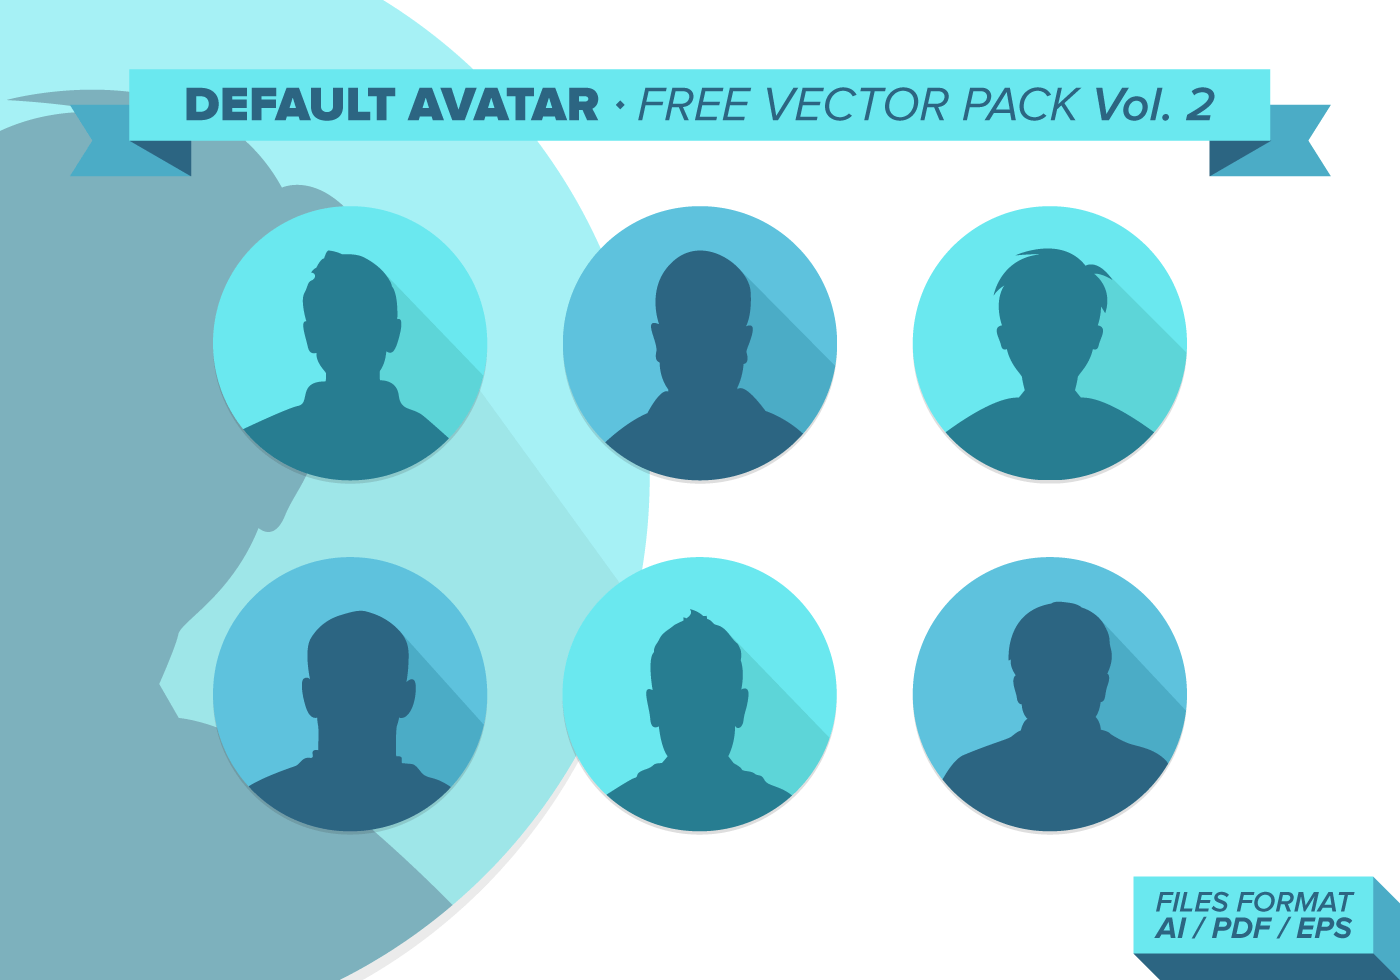 Default Avatar Free Vector Pack Vol 2 Download Free